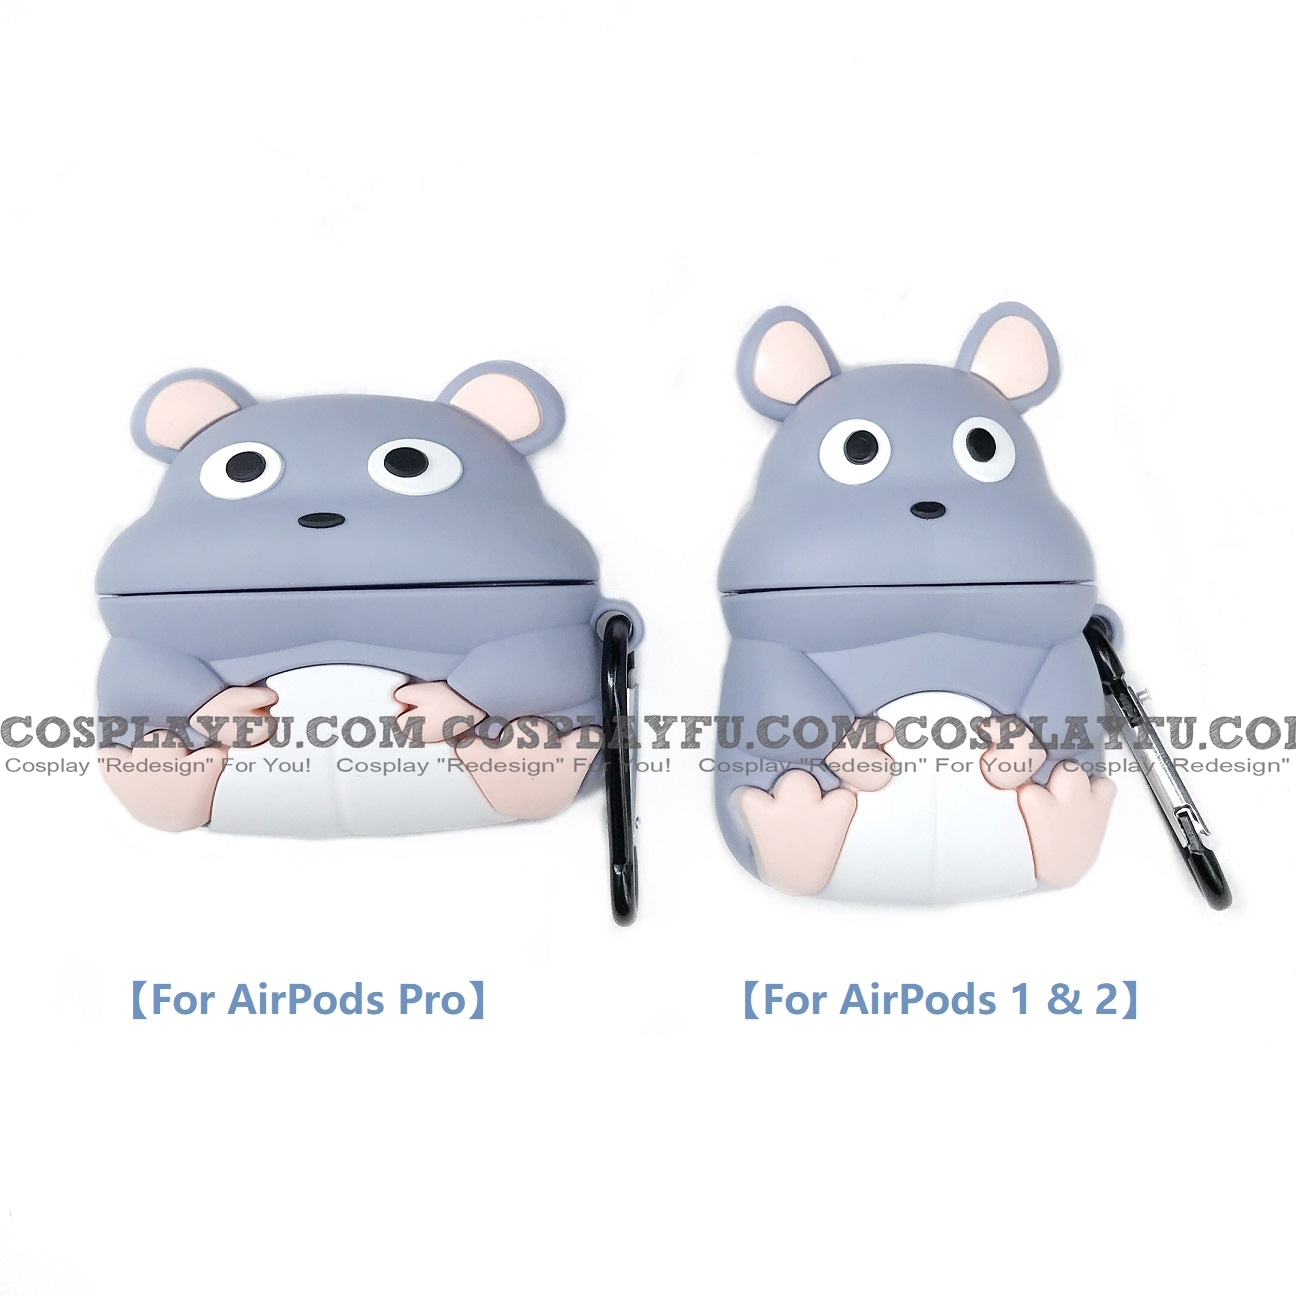 Boh Cute Mouse Airpod Case Silicone Case For Apple Airpods 1 2 Pro From Spirited Away Cosplayfu Ca